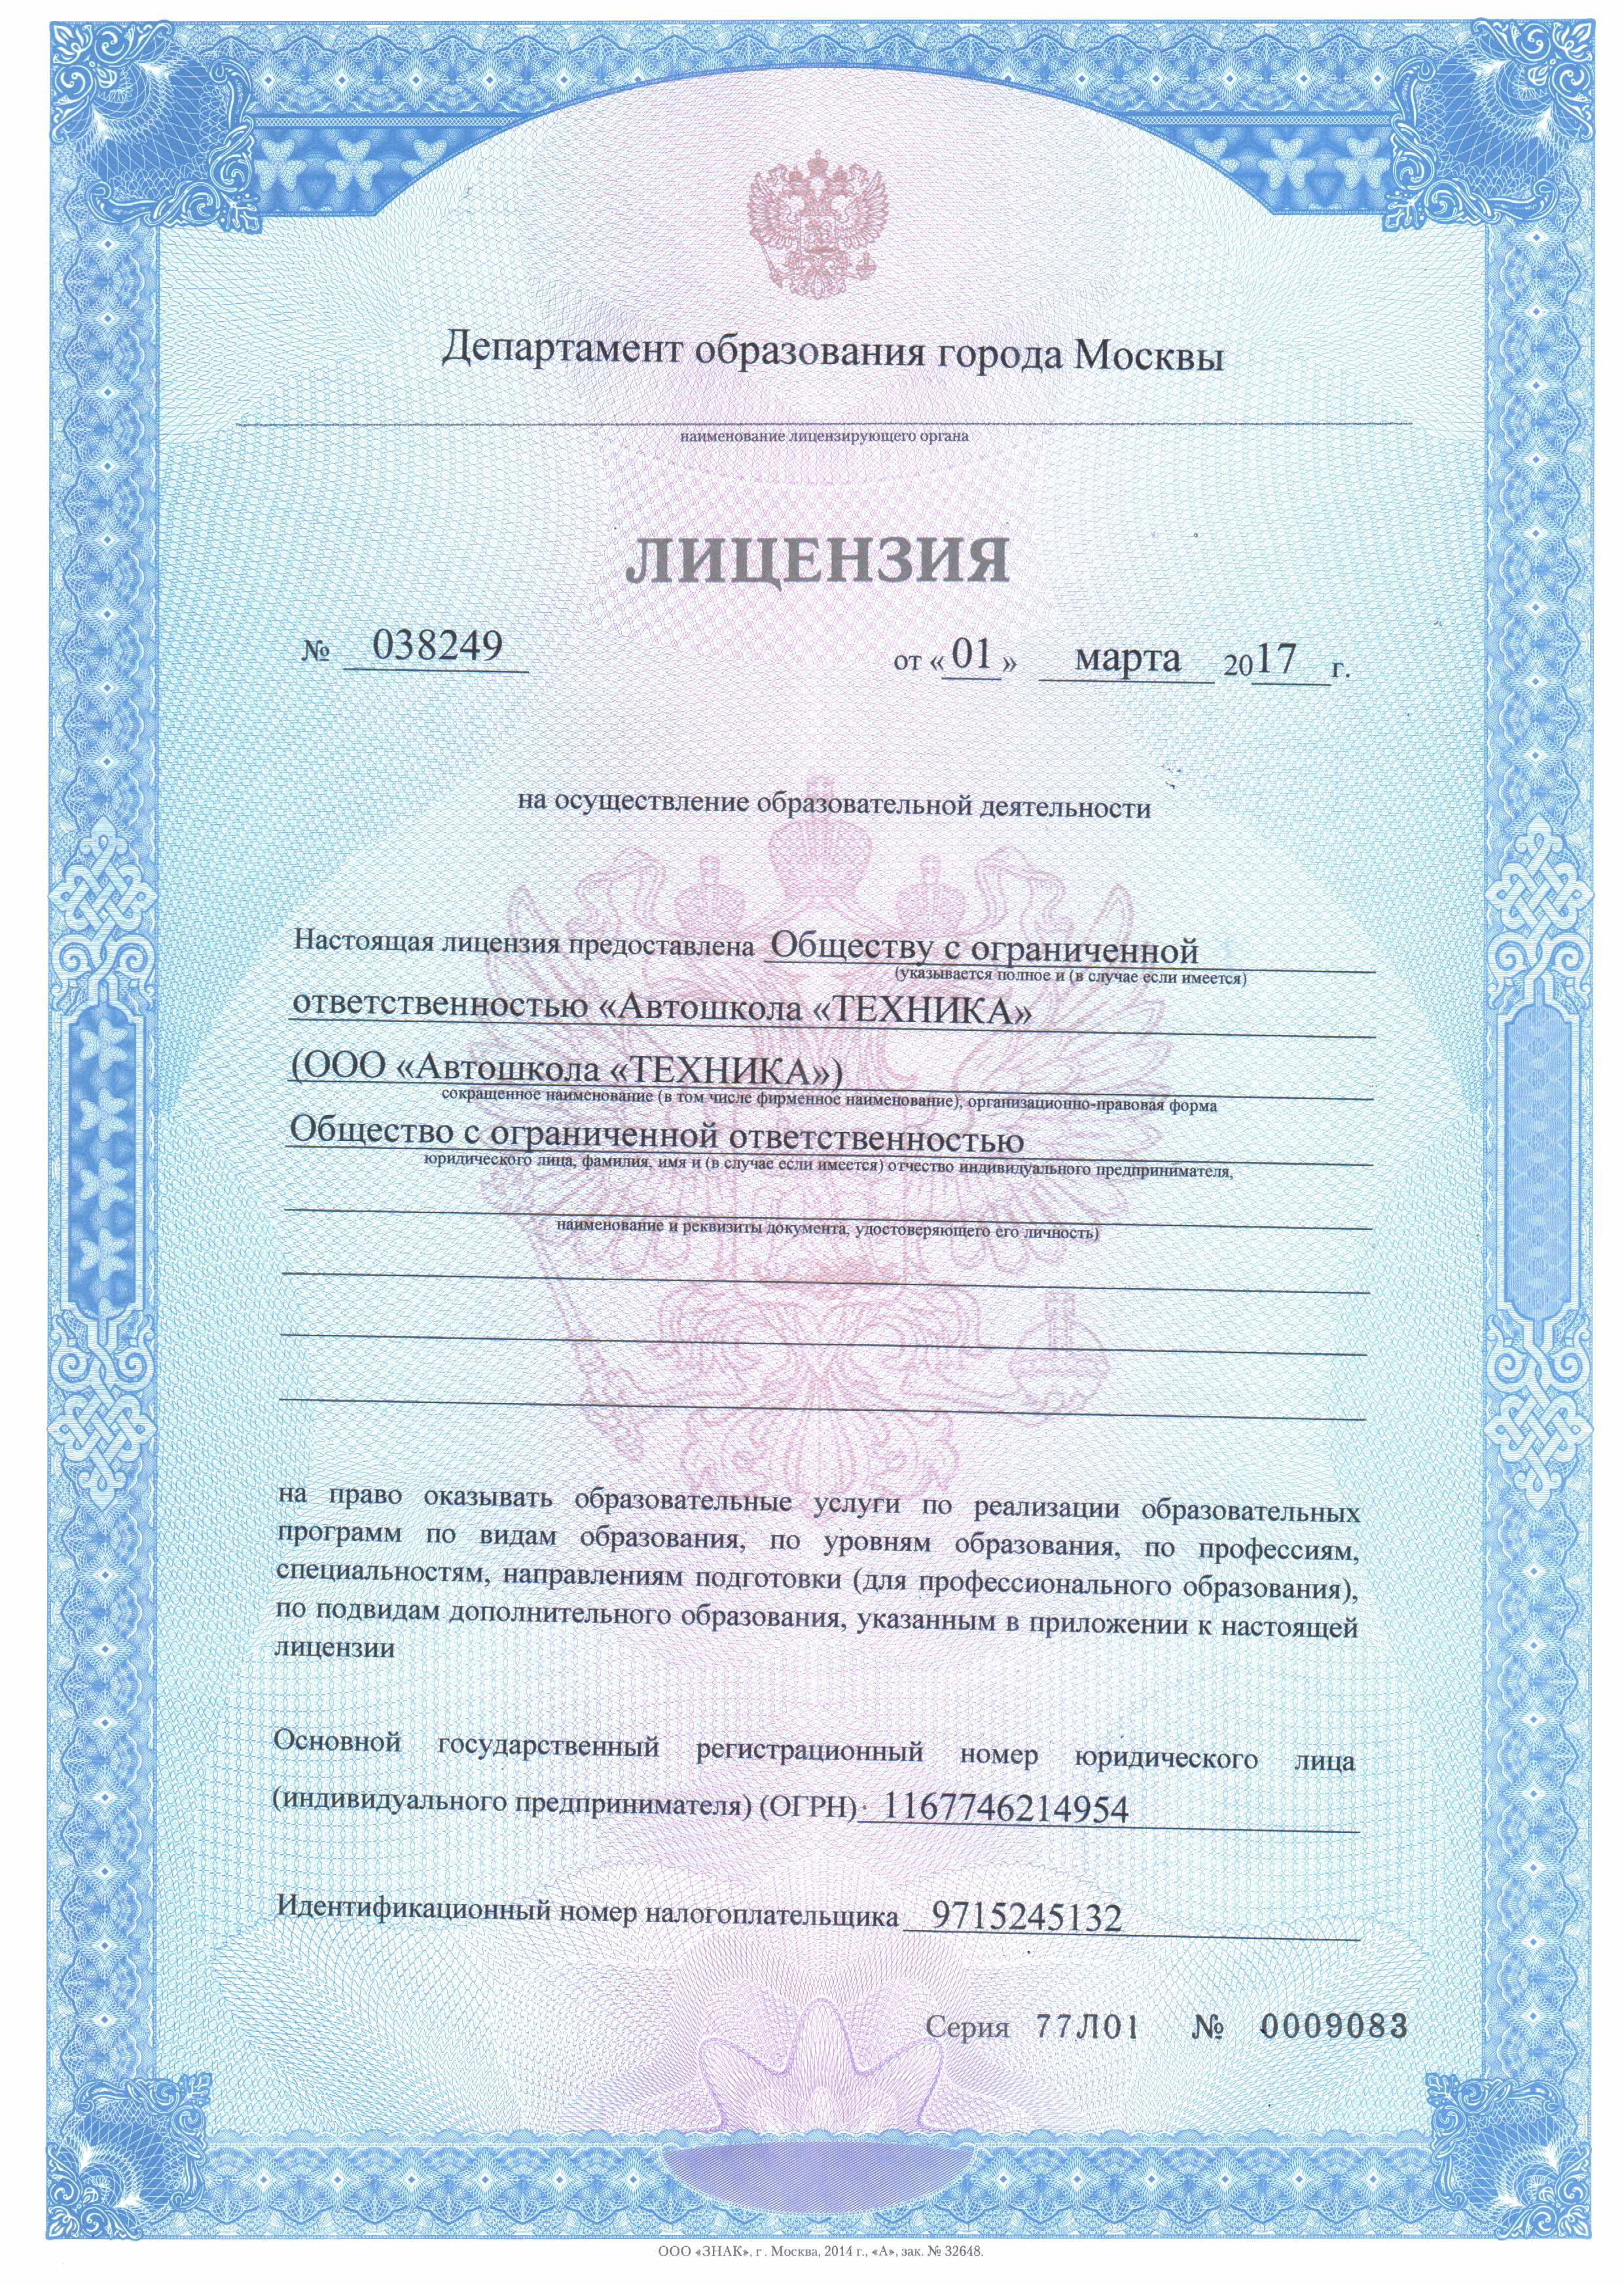 license_1_page